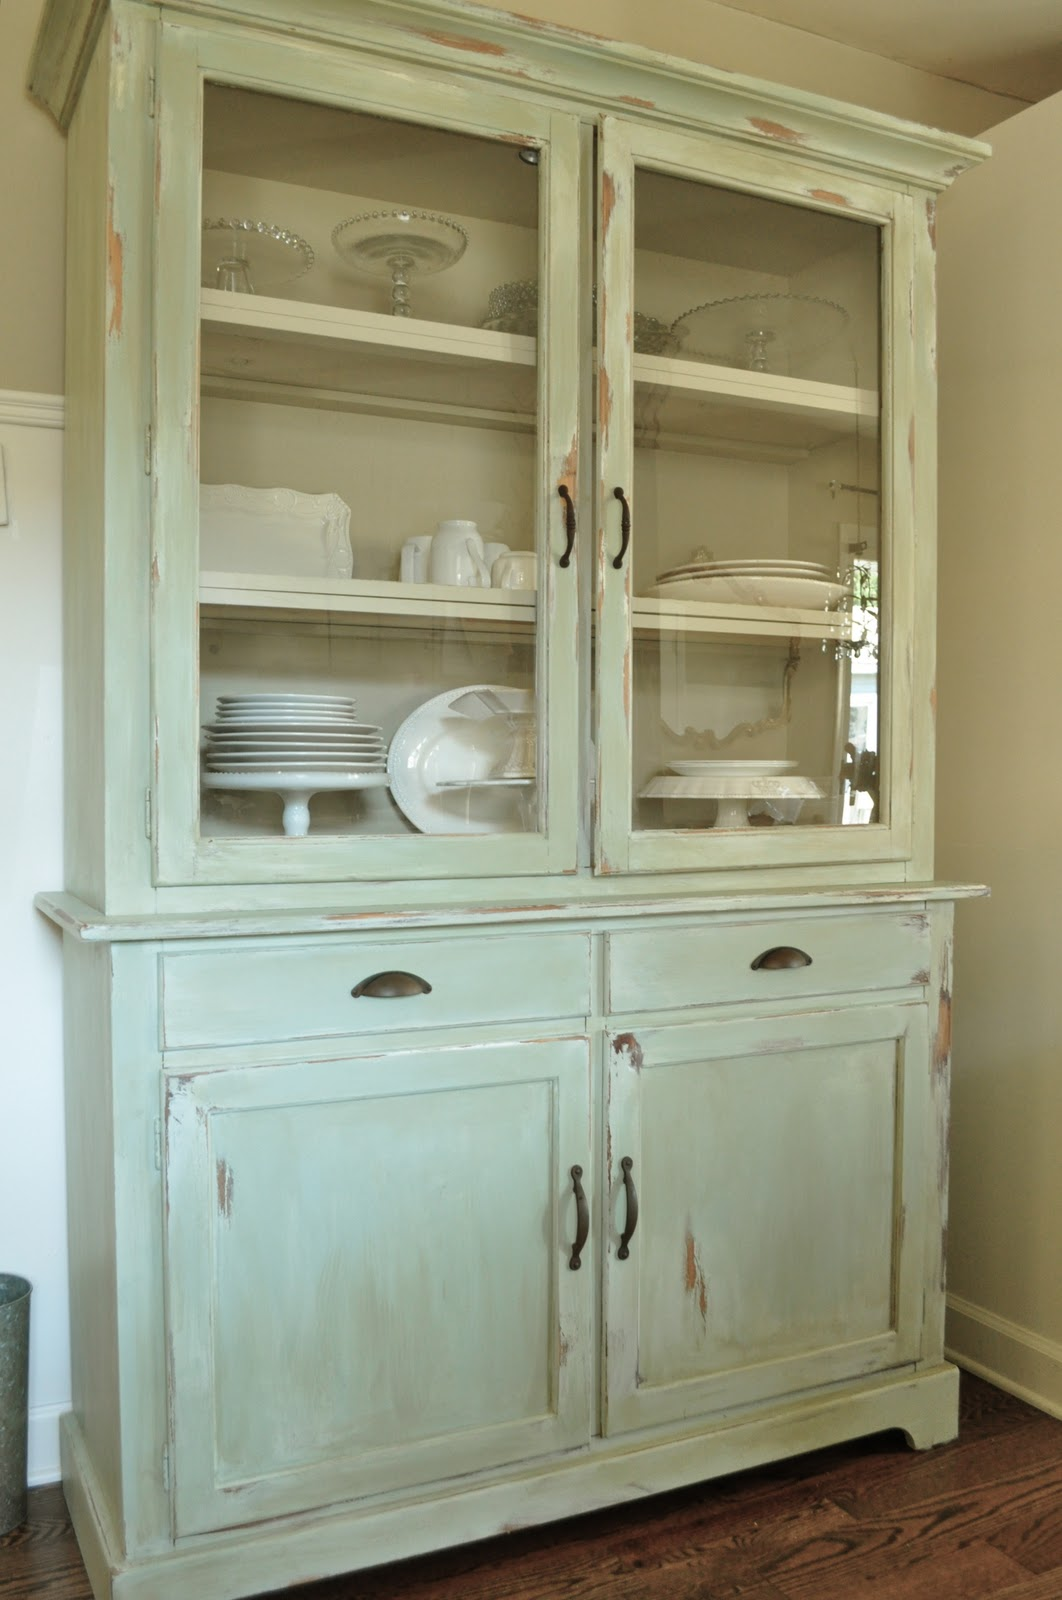 How to make a new piece of furniture look old with paint for Making old kitchen cabinets look modern